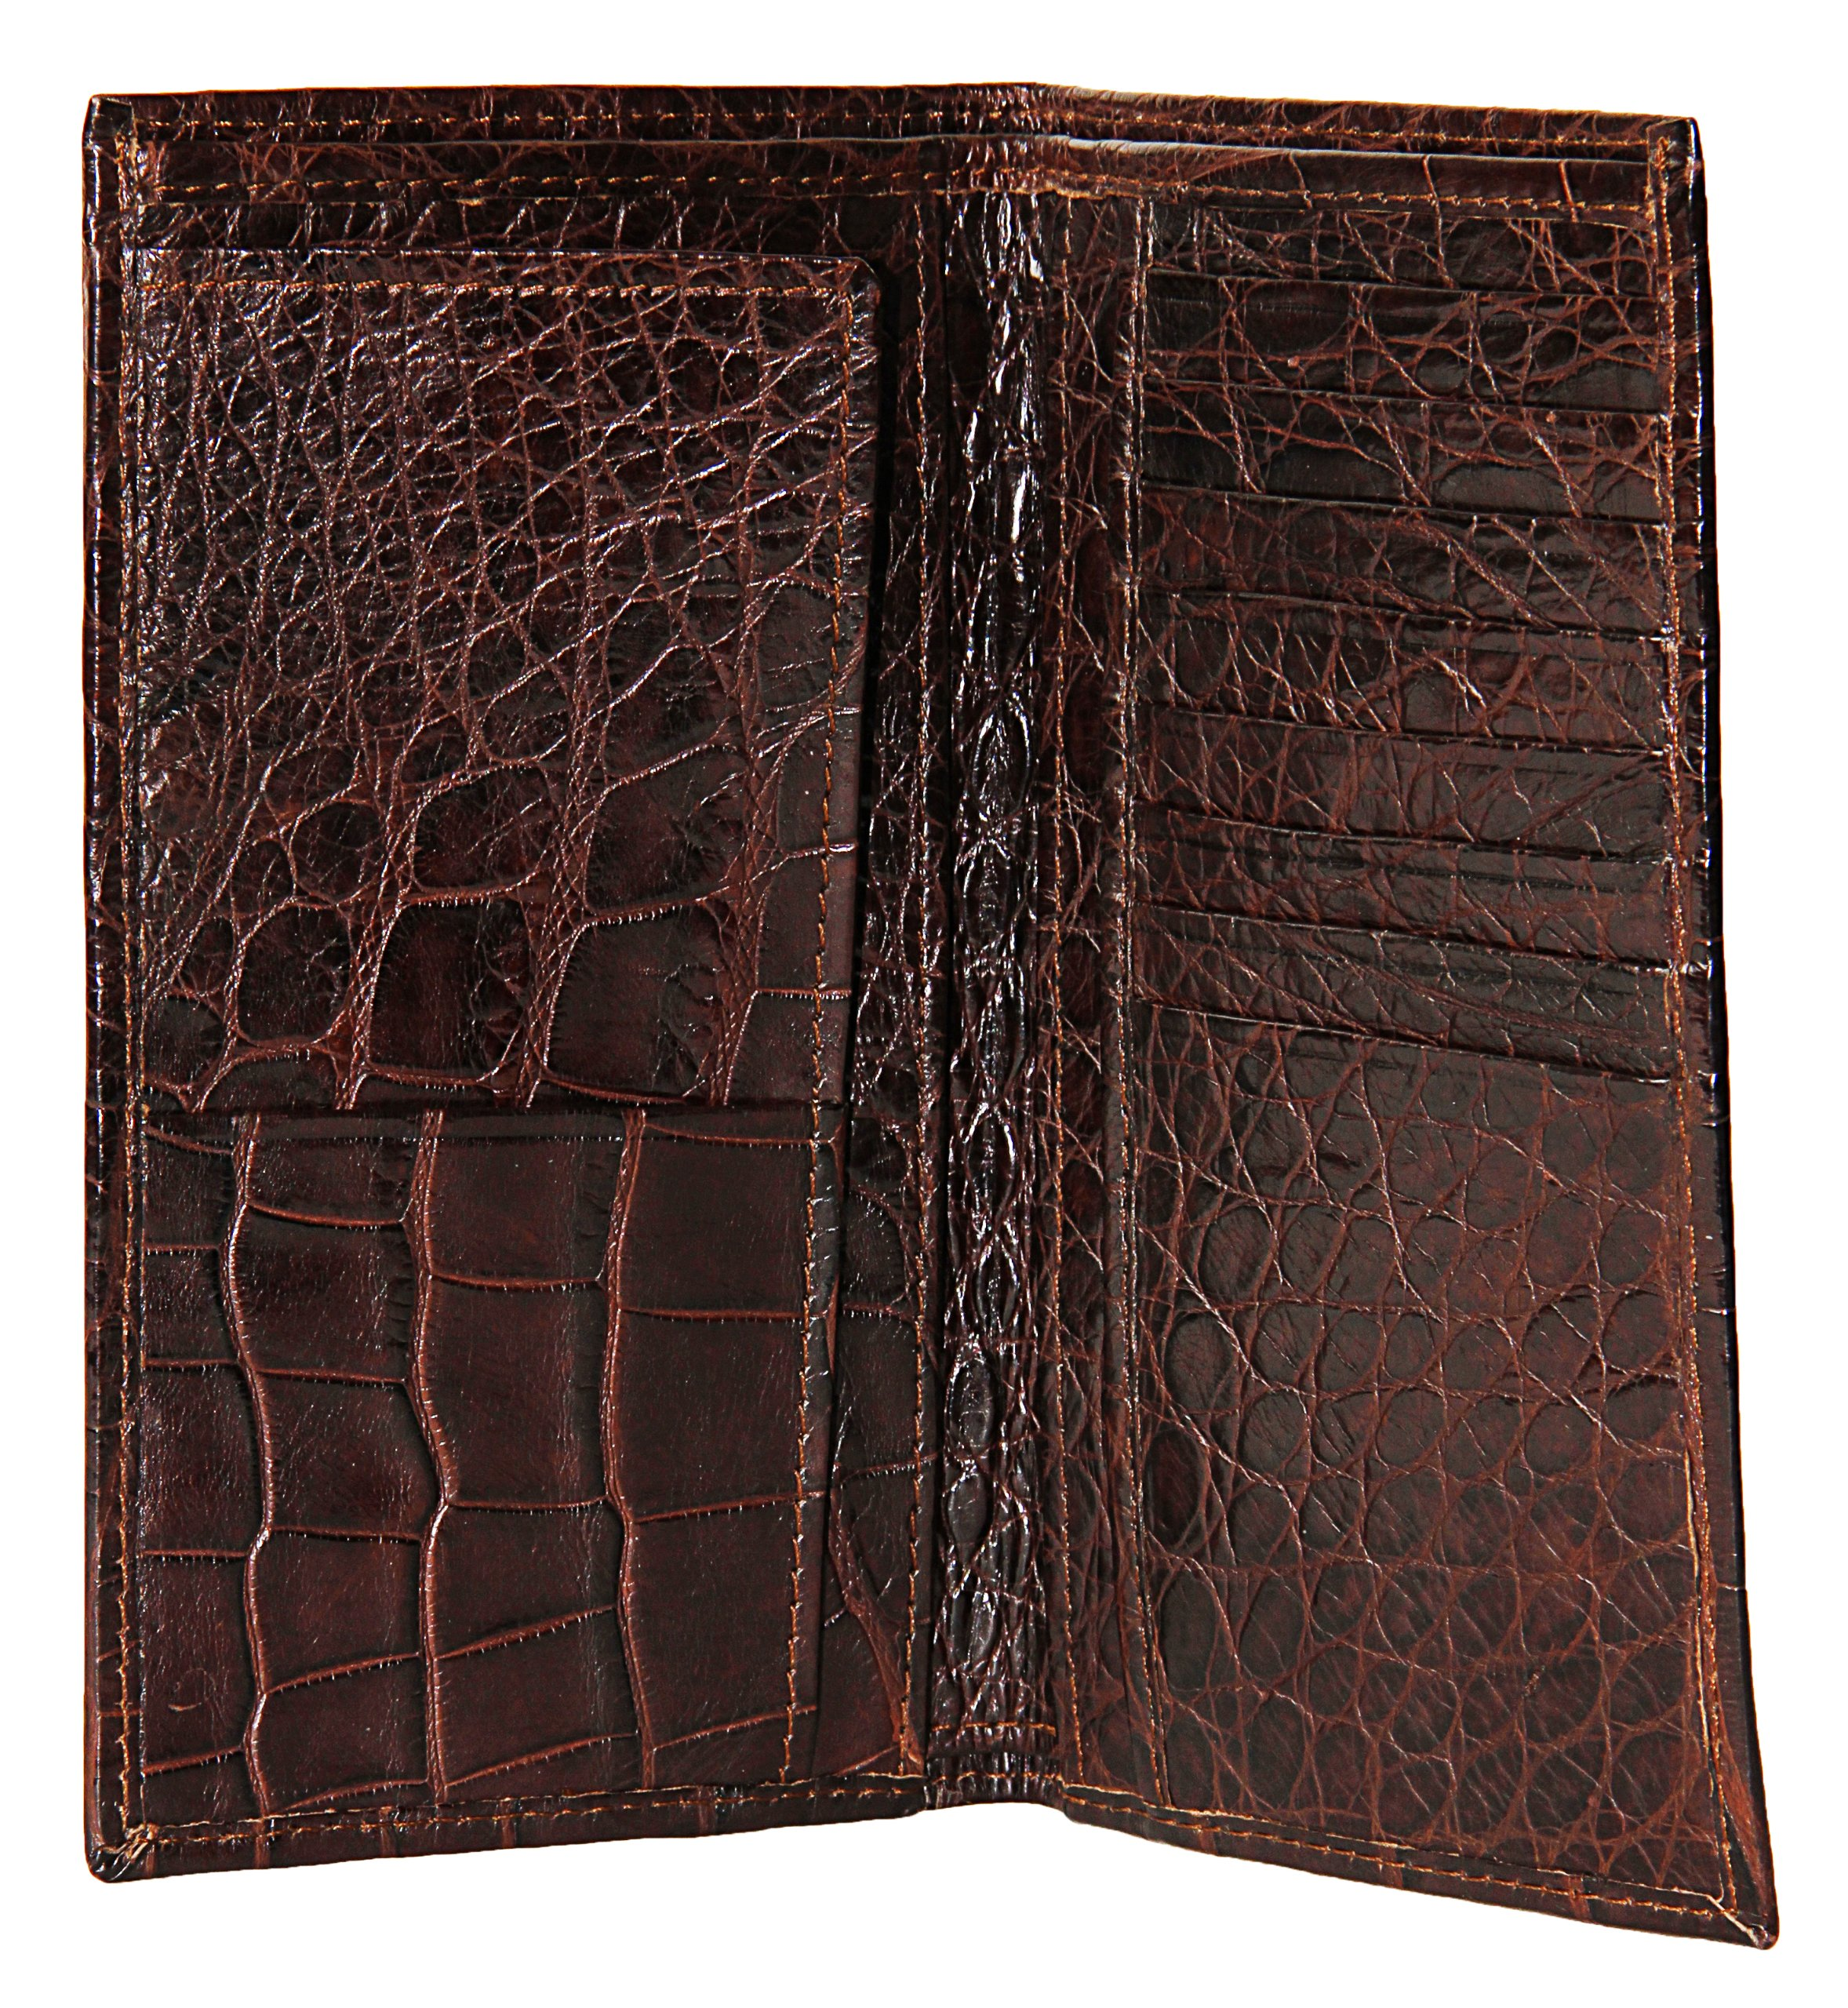 Sultan Genuine Alligator Unisex Checkbook Wallet - Brown Safari (Semi-Gloss) - One Size